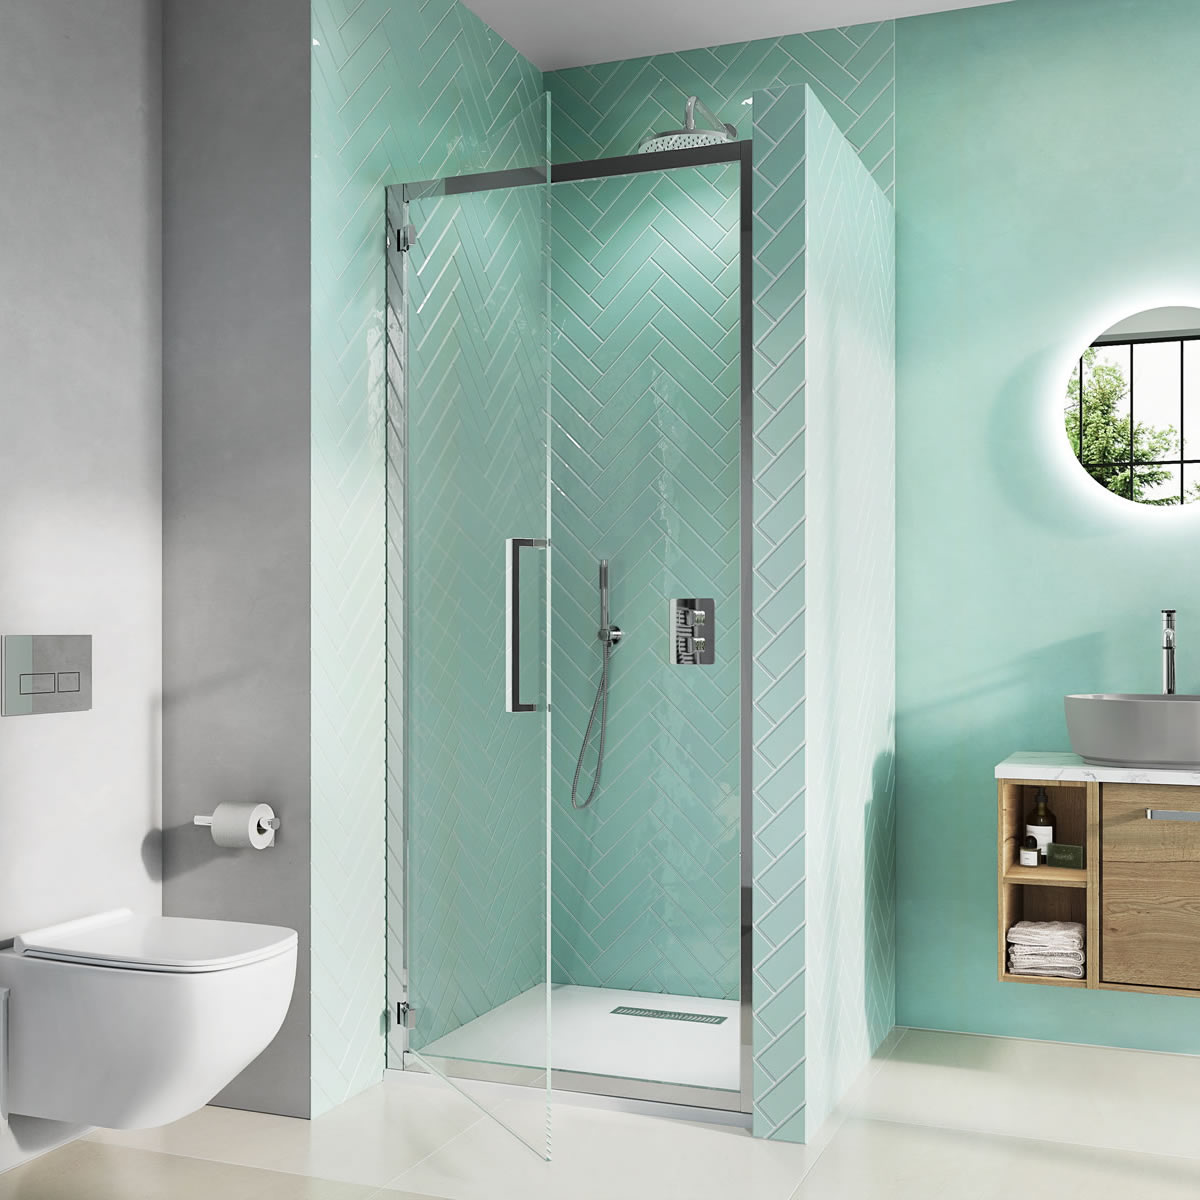 Infinity hinged door stainless steel